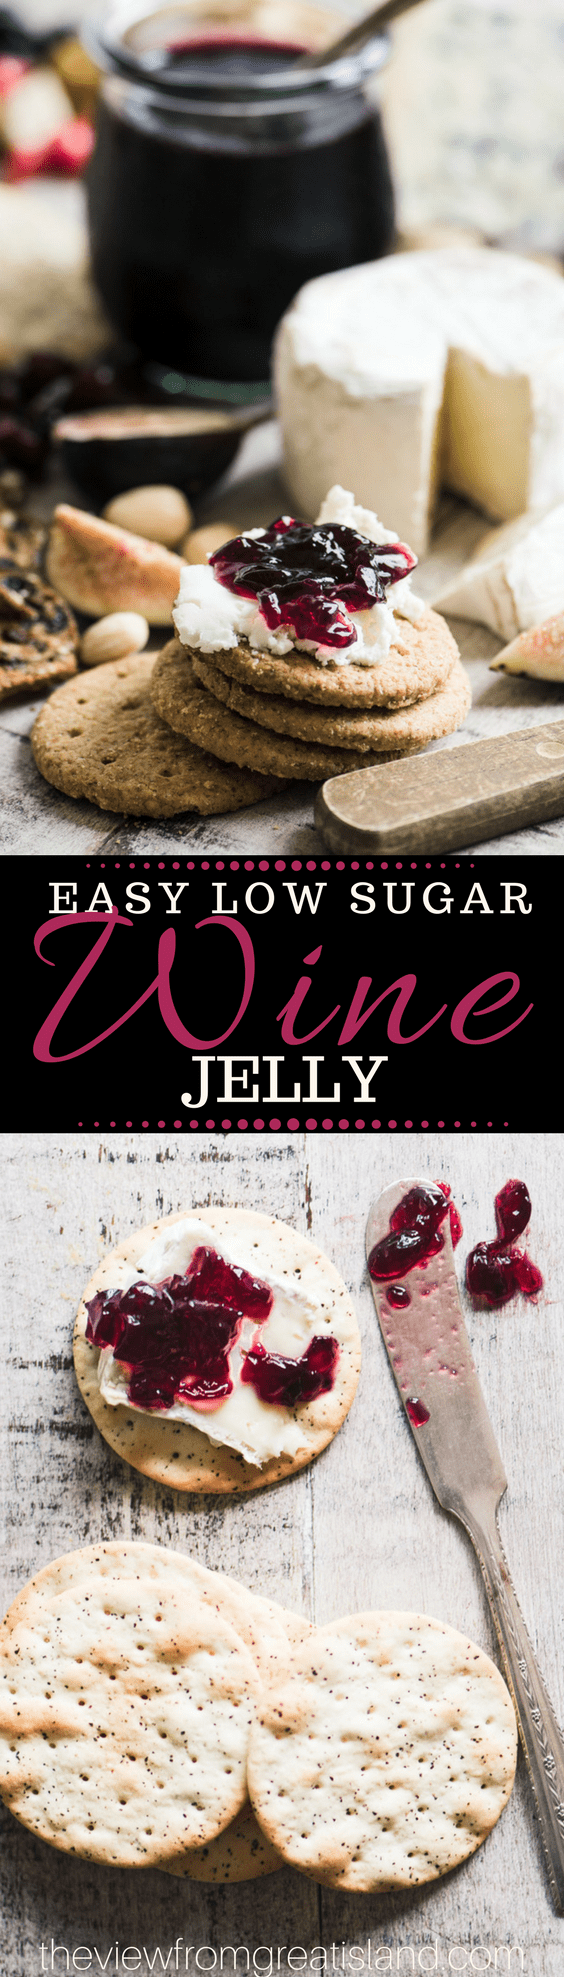 This Easy Low Sugar Wine Jelly Recipe